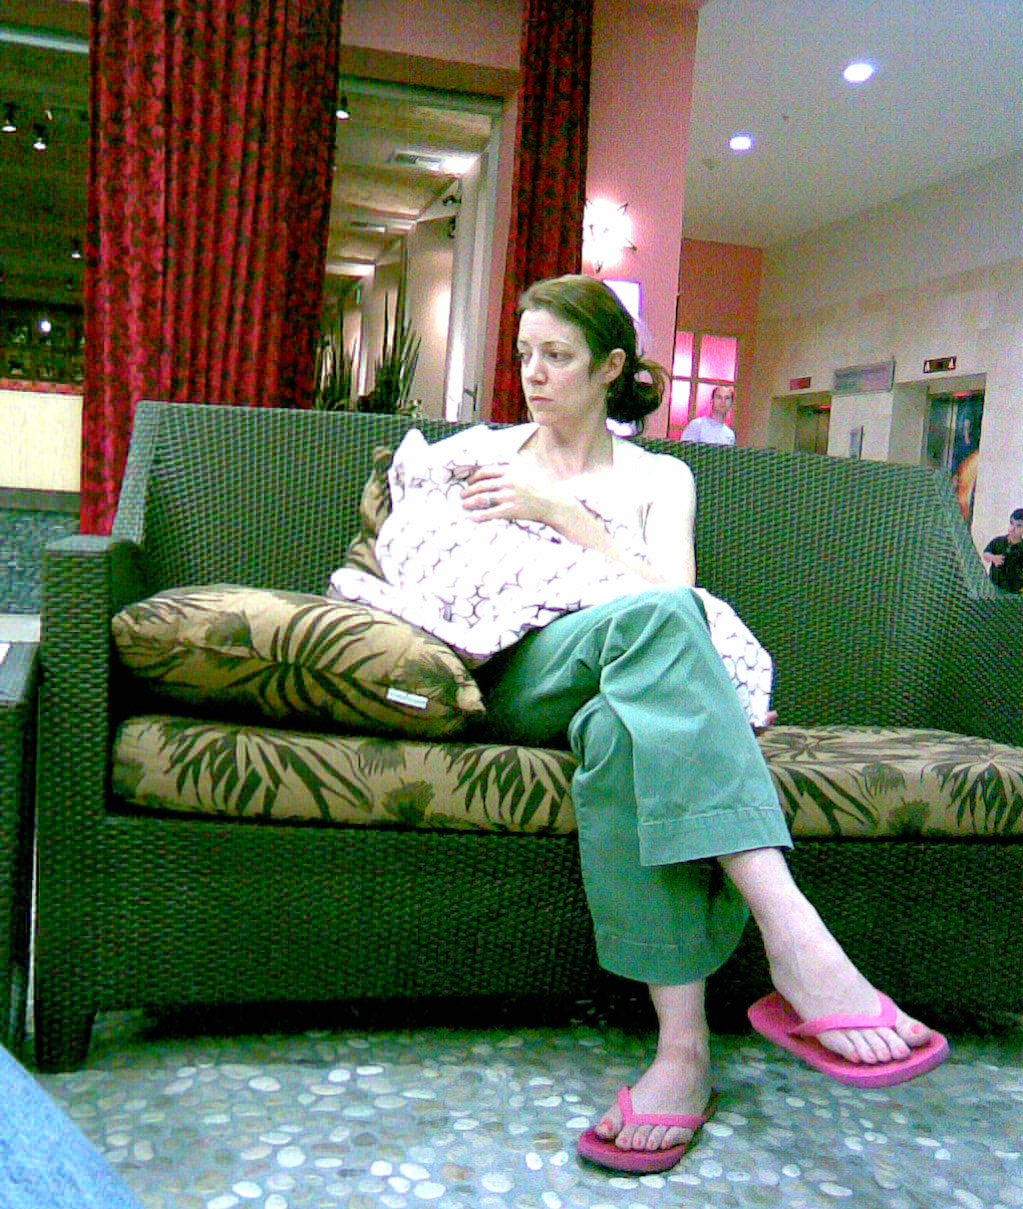 Public nursing challenges at the Mall - Me with my ten-month-old daughter - Nov. 23, 2007